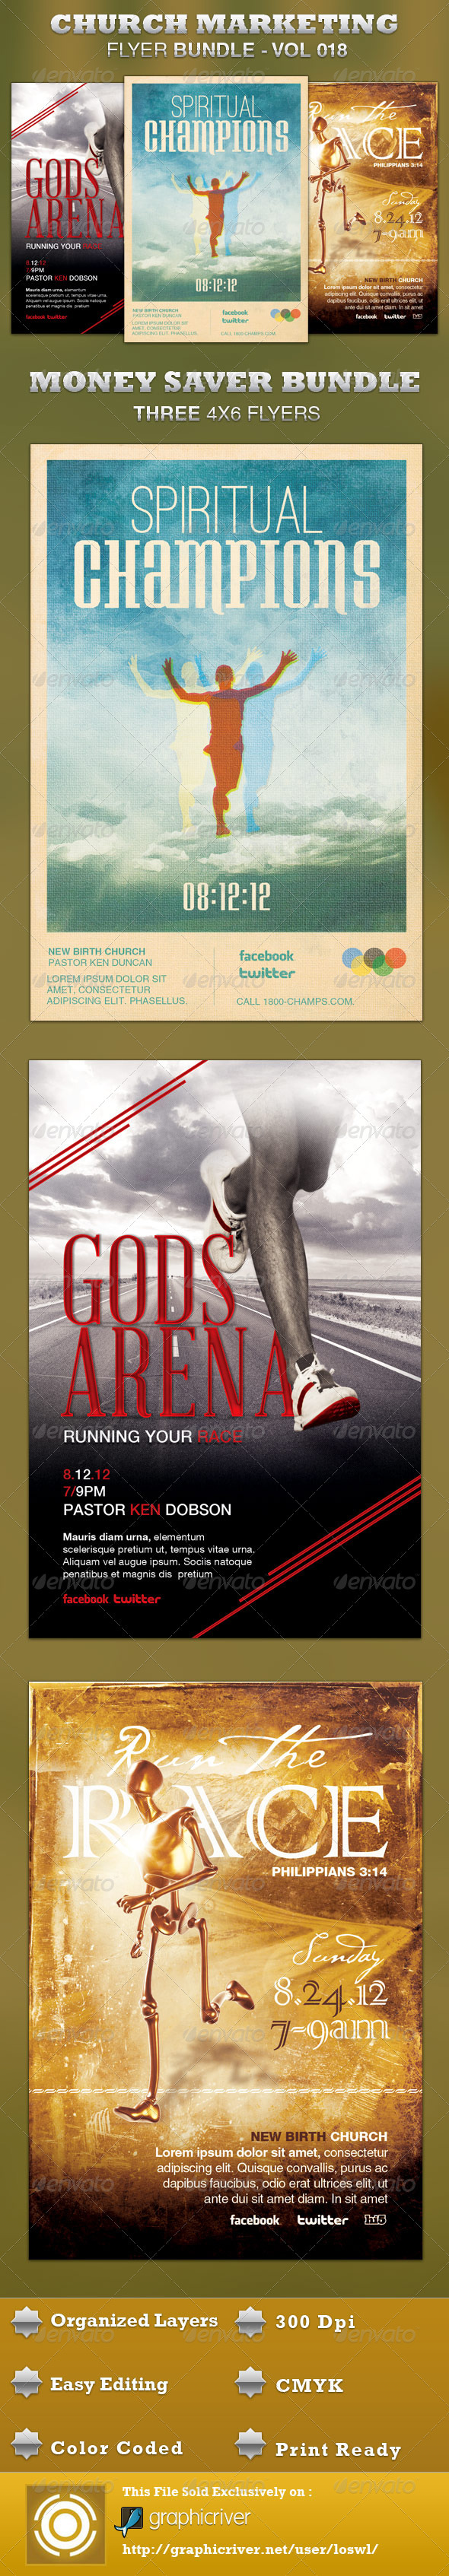 Church Marketing Flyer Bundle-Vol 018 - Church Flyers